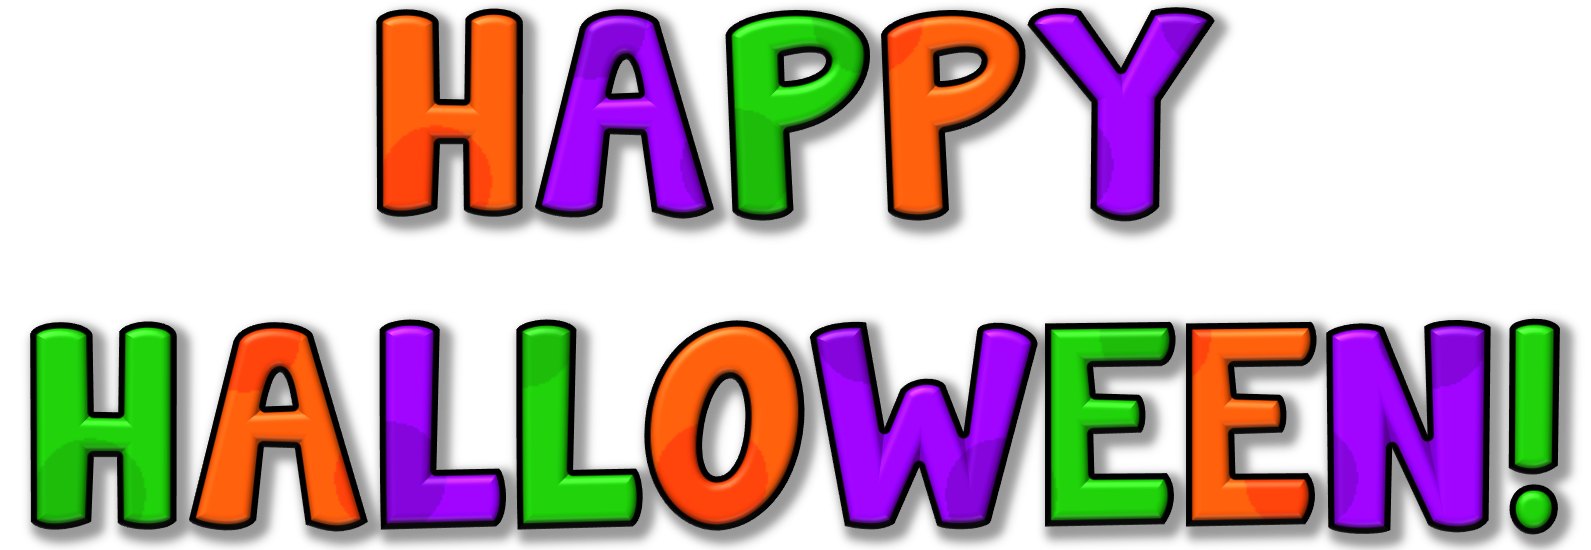 Cute happy halloween clipart download Free Happy Halloween Clipart at GetDrawings.com | Free for personal ... download